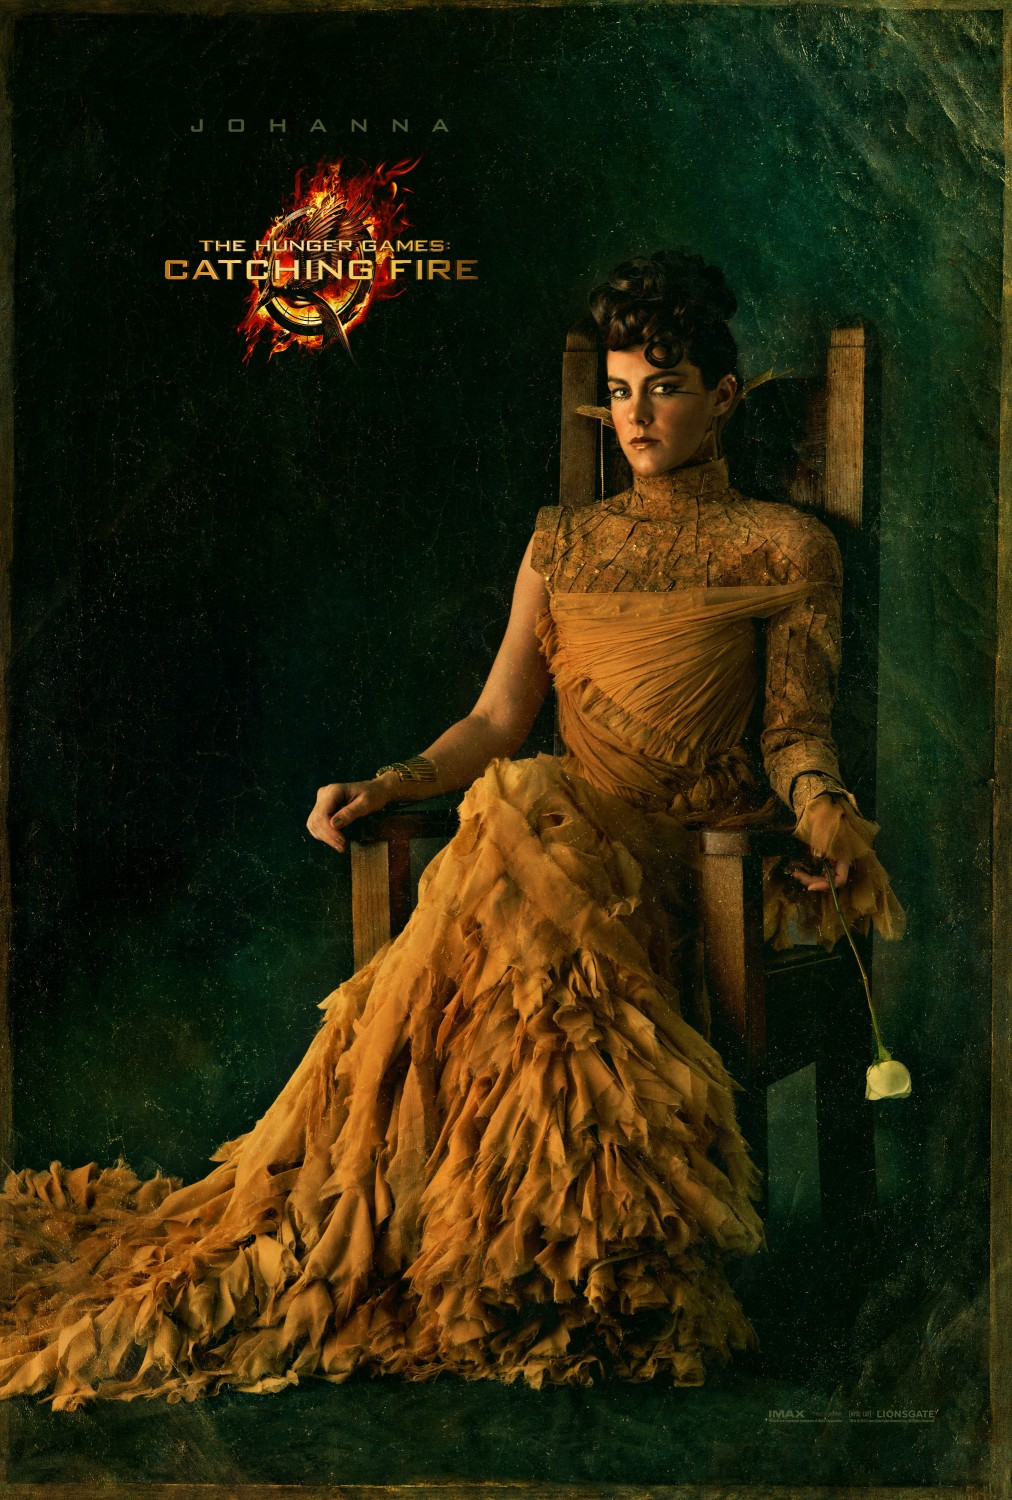 Catching Fire Johanna Character Poster Three More Catching Fire Posters Featuring Johanna, Finnick and Beetee